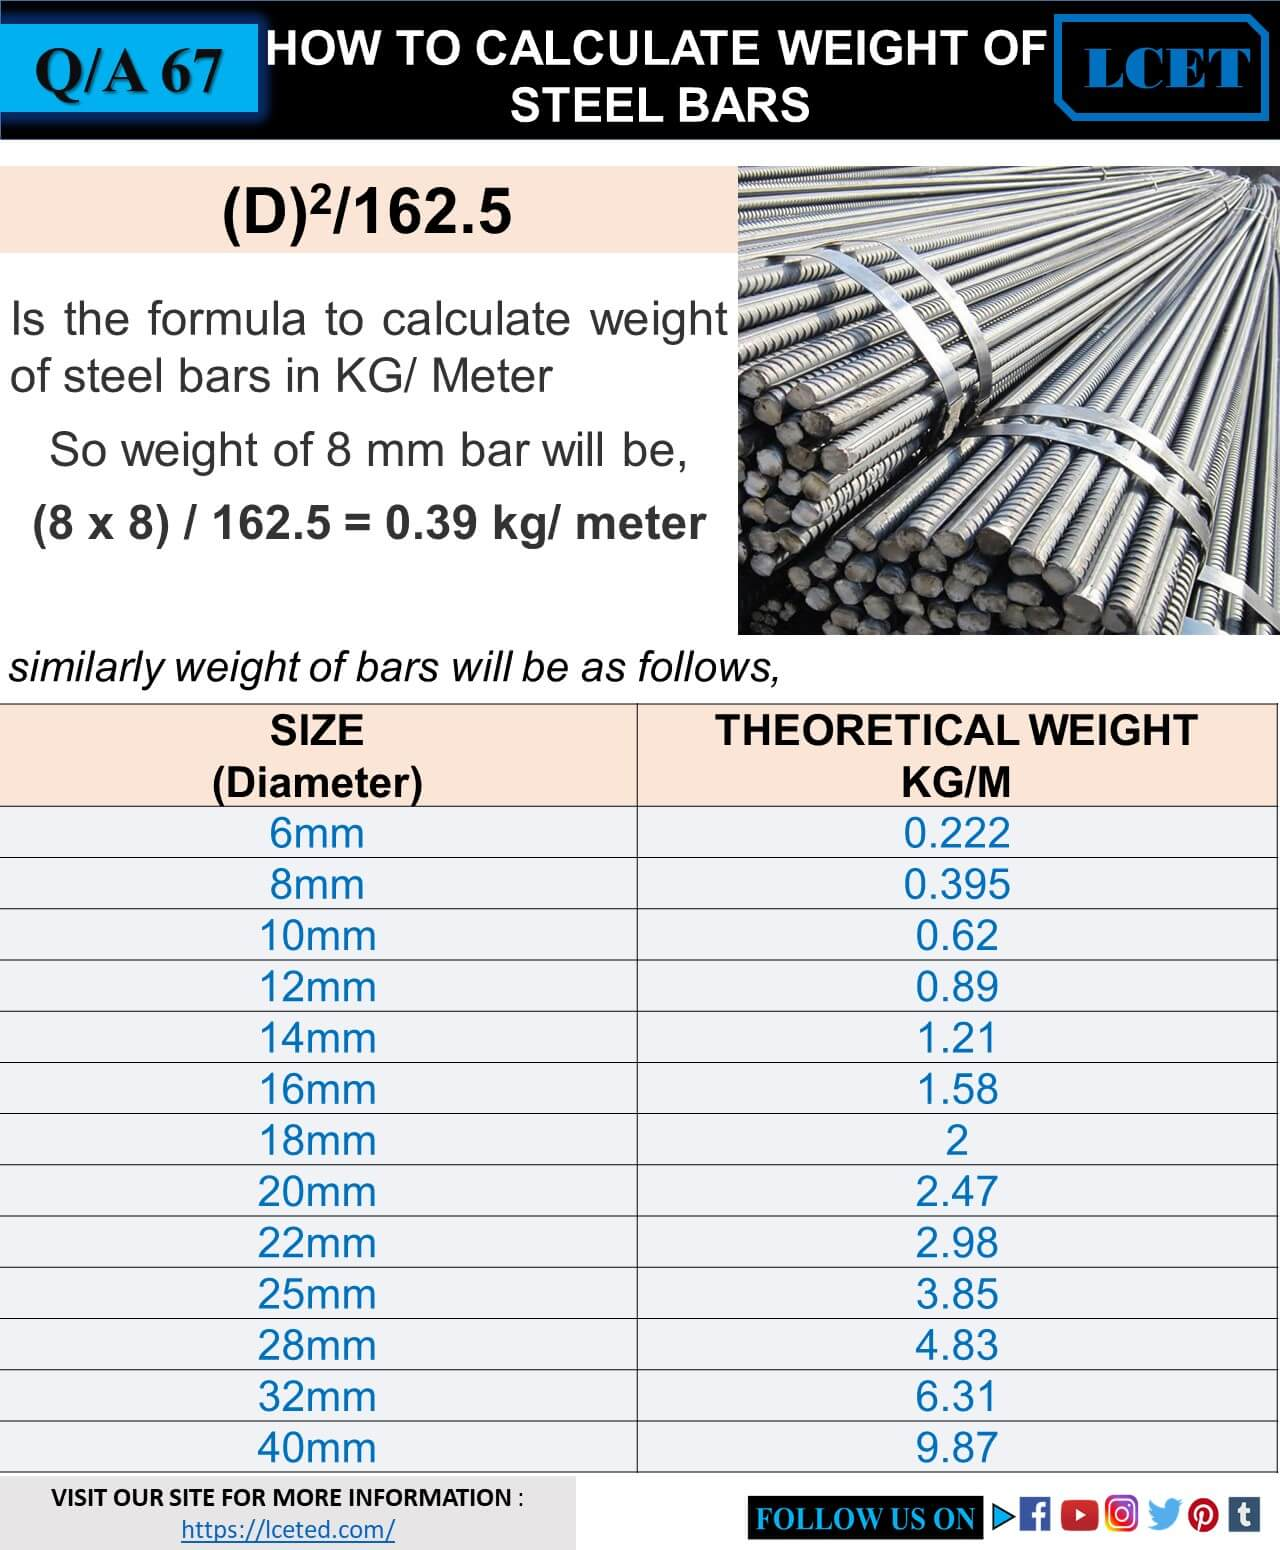 HOW TO CALCULATE WEIGHT OF STEEL BARS